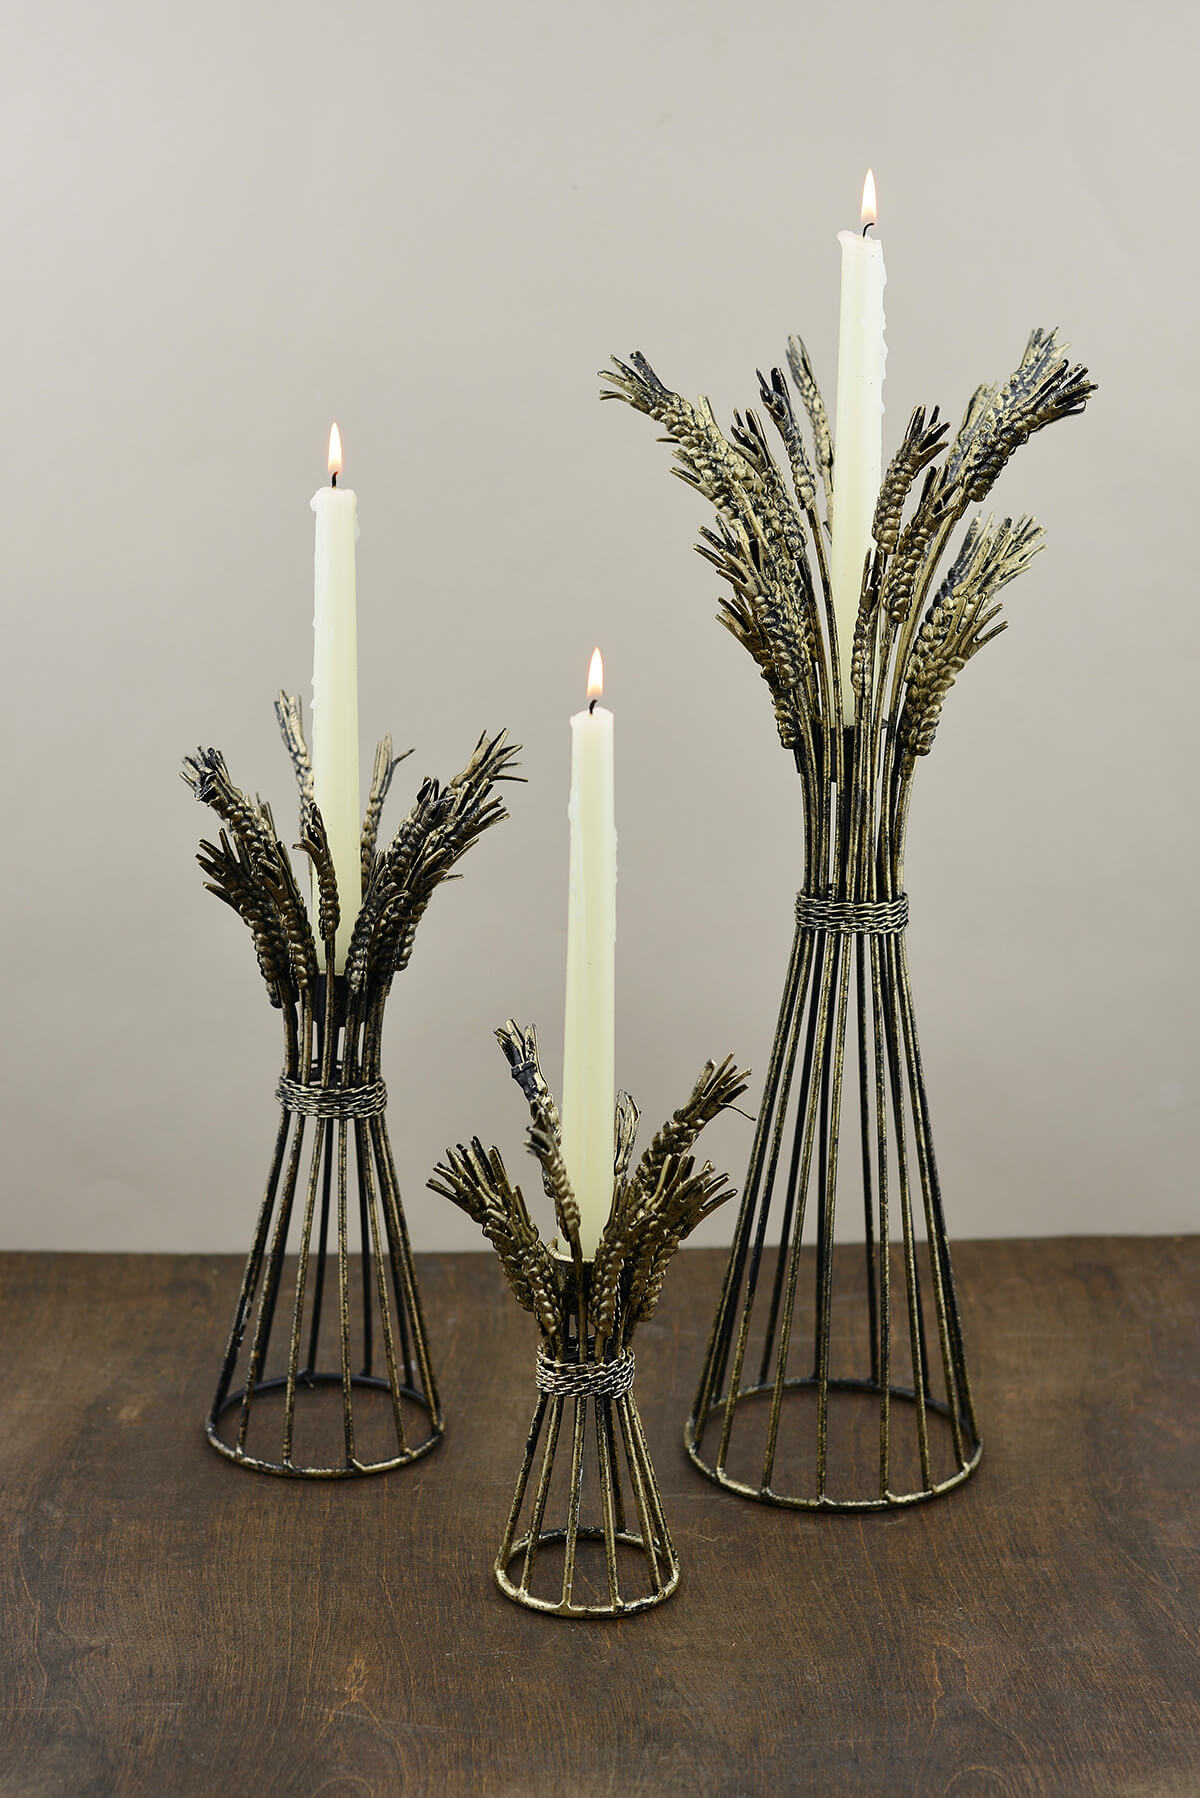 Of three harvest taper candle holders 9 13 19 tall set of three harvest taper candle holders 9 13 19 tall reviewsmspy